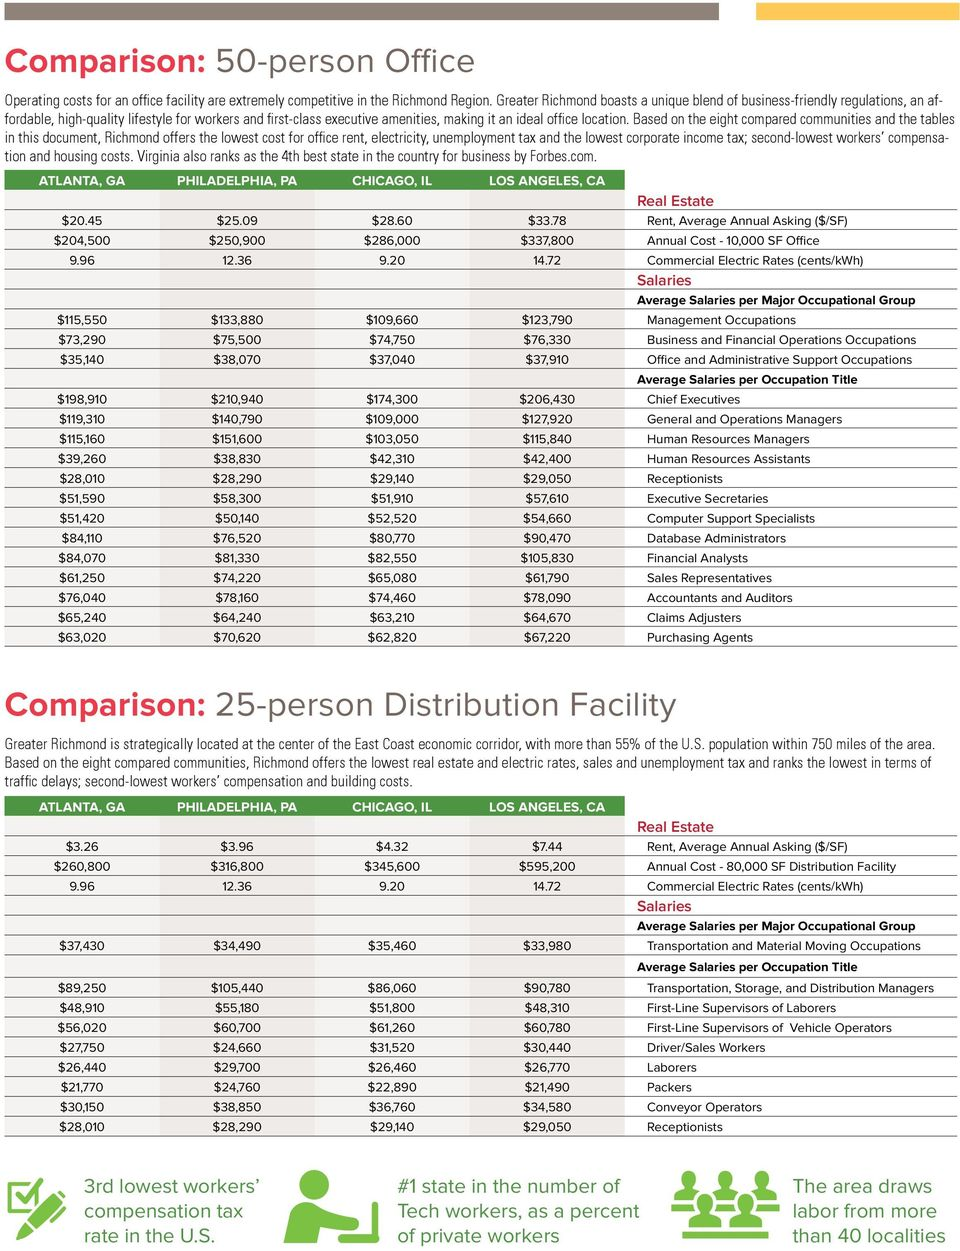 Based on the eight compared communities and the tables in this document, ichmond offers the lowest cost for office rent, electricity, unemployment tax and the lowest corporate income tax;